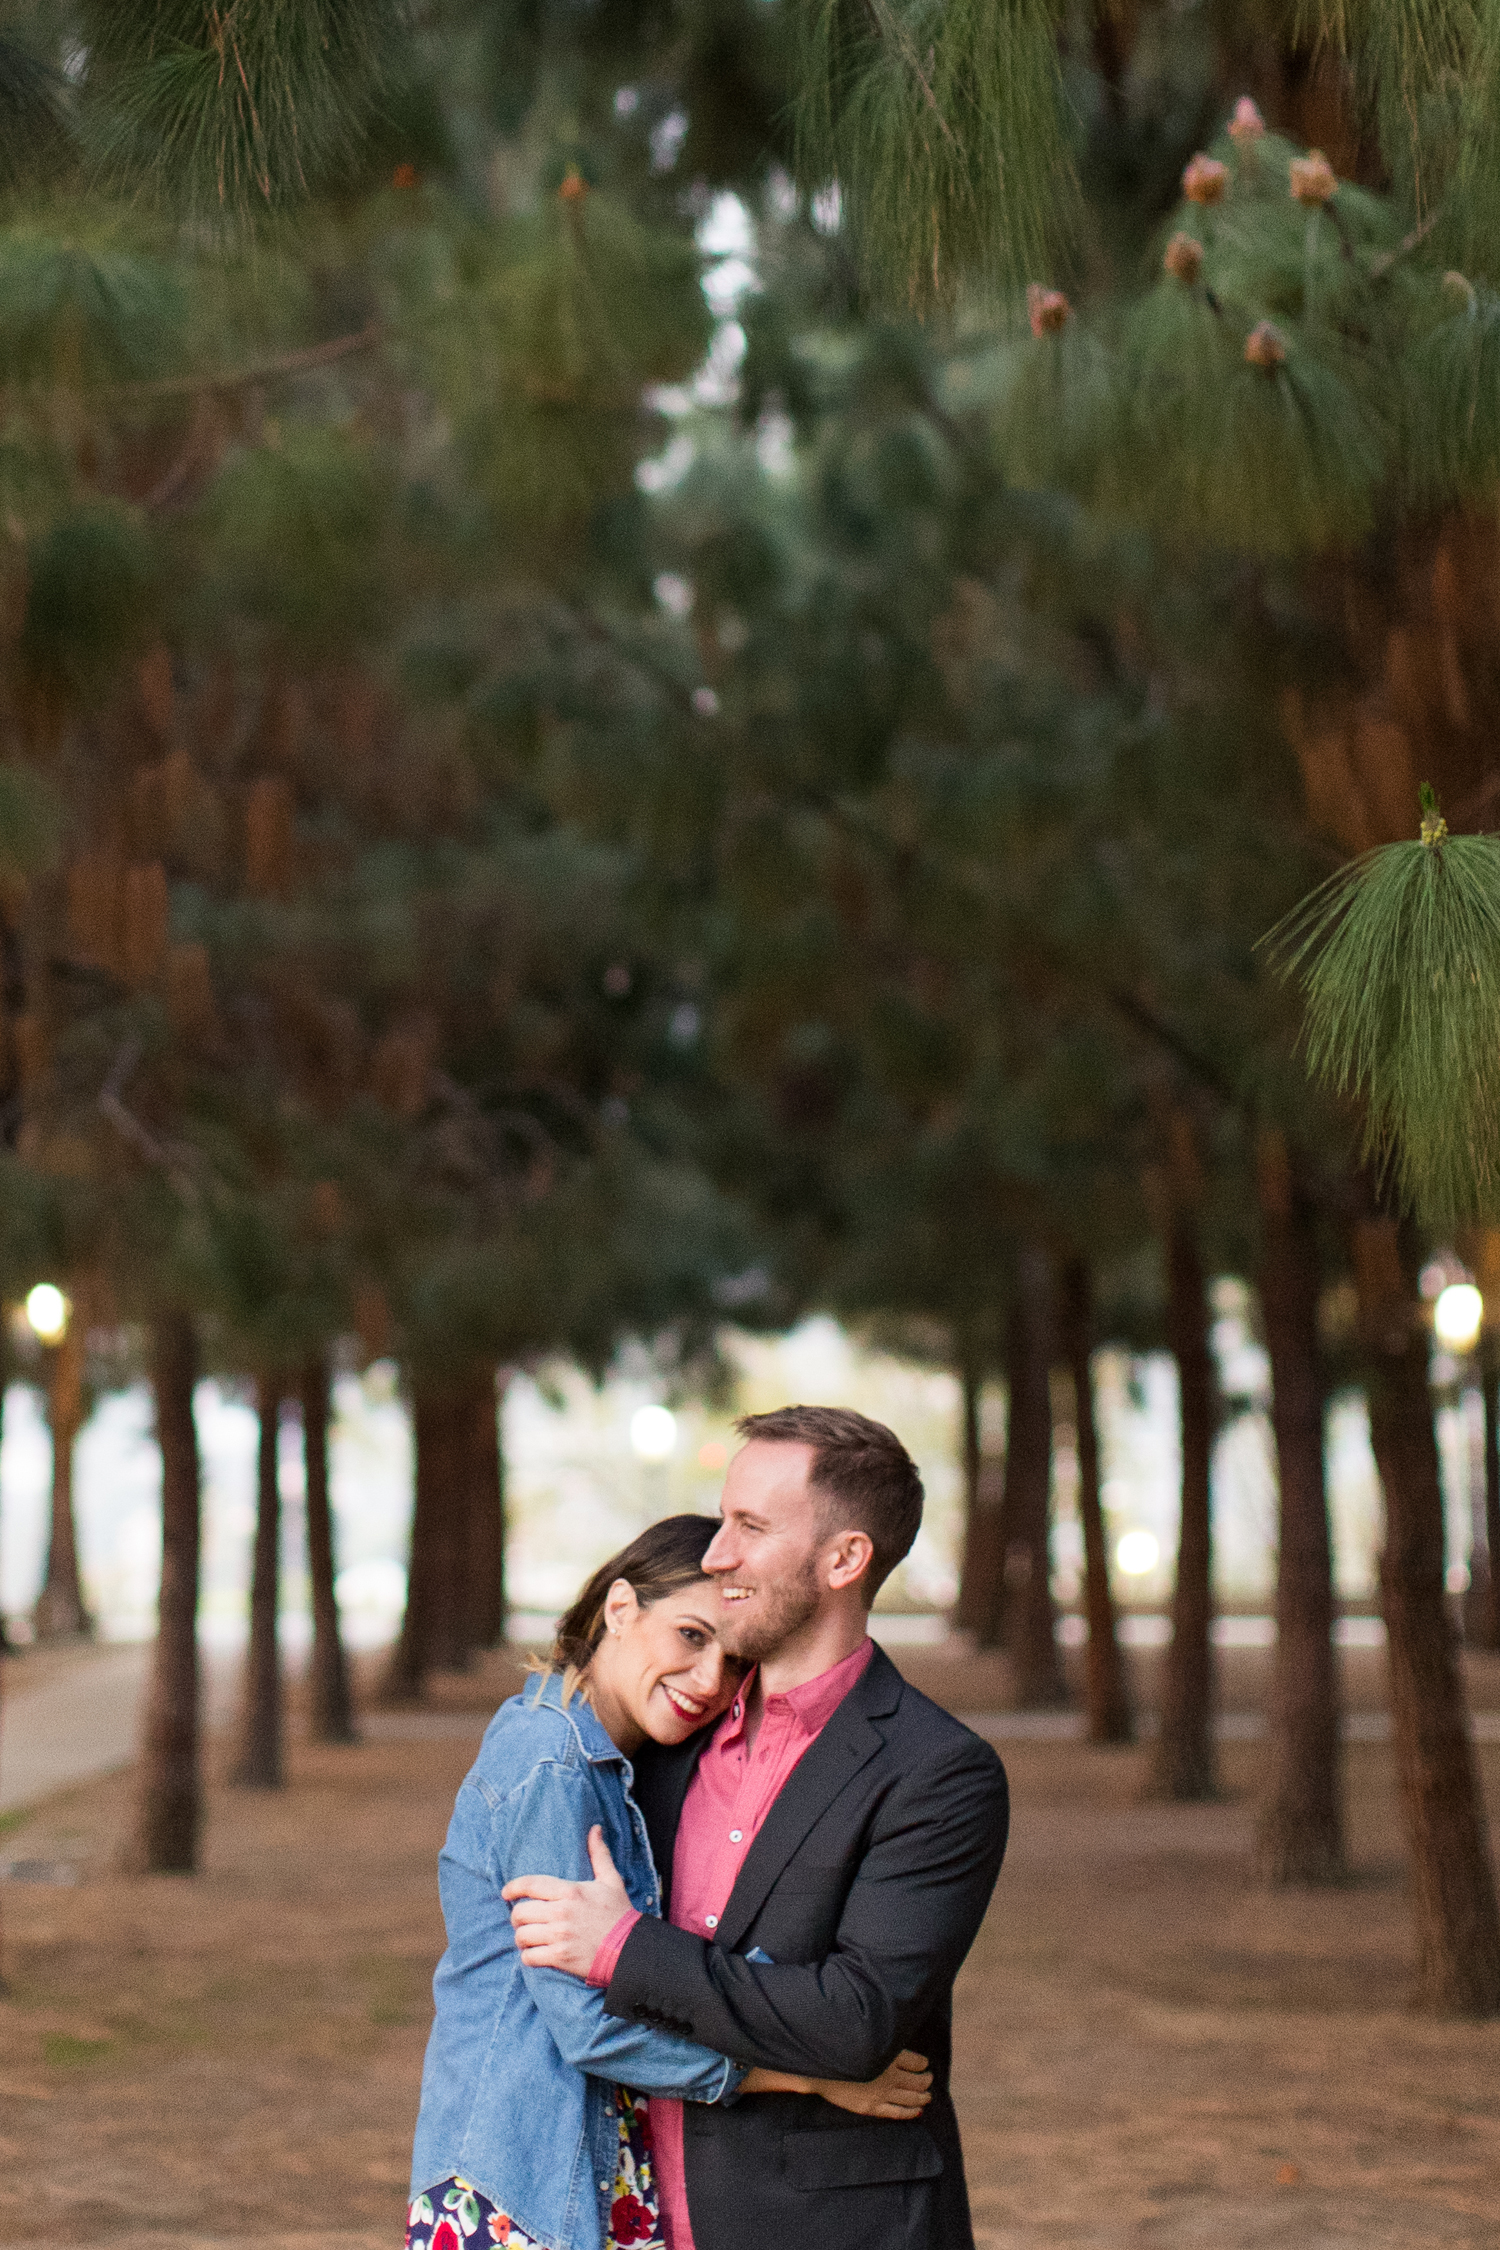 barnsdall-park-engagement-photography013.jpg